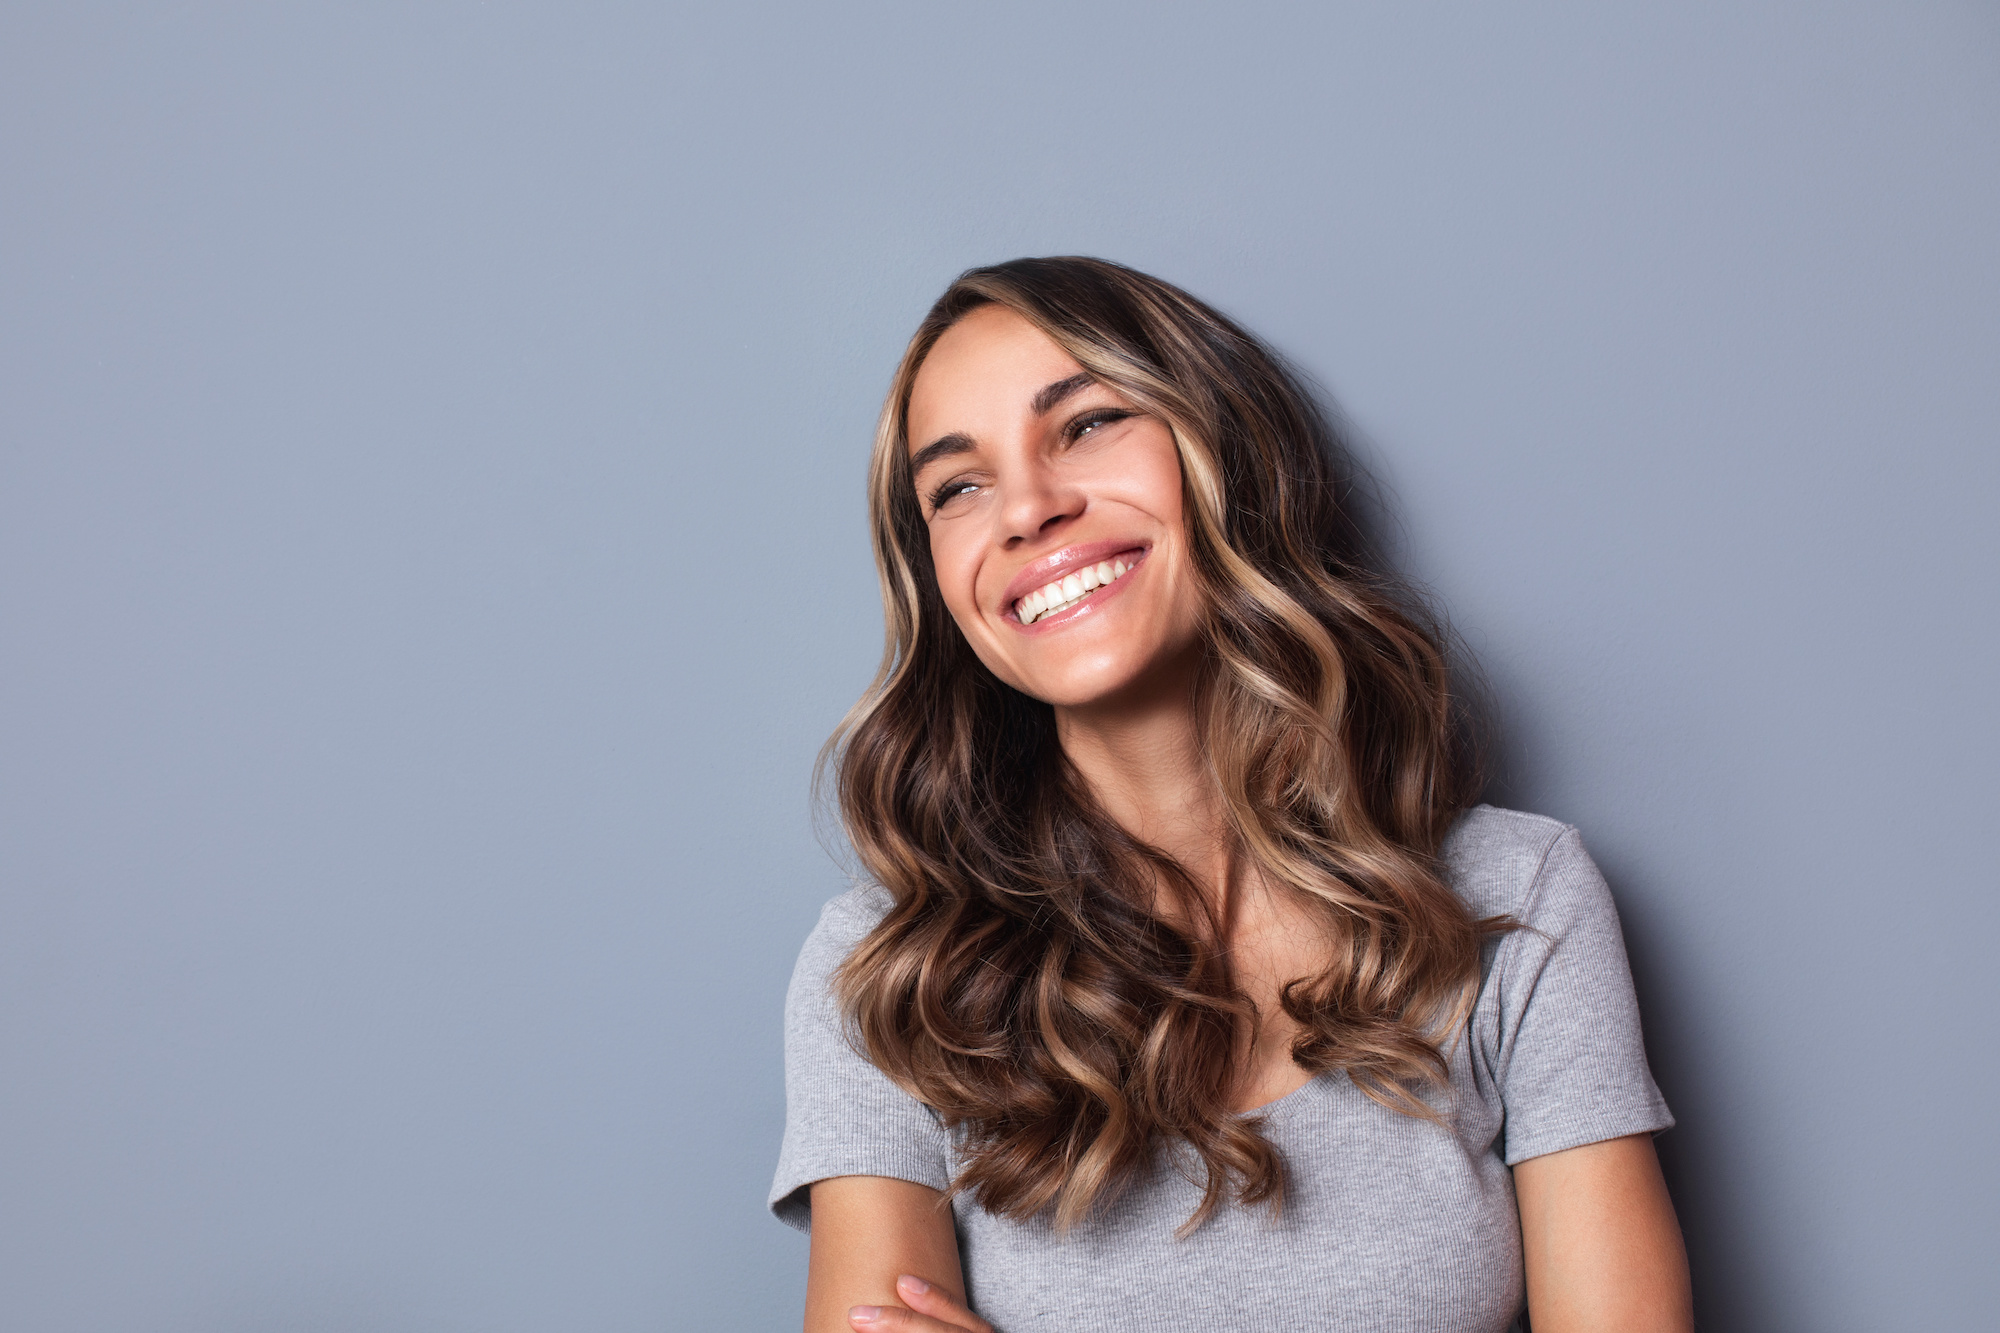 woman smiling to the side